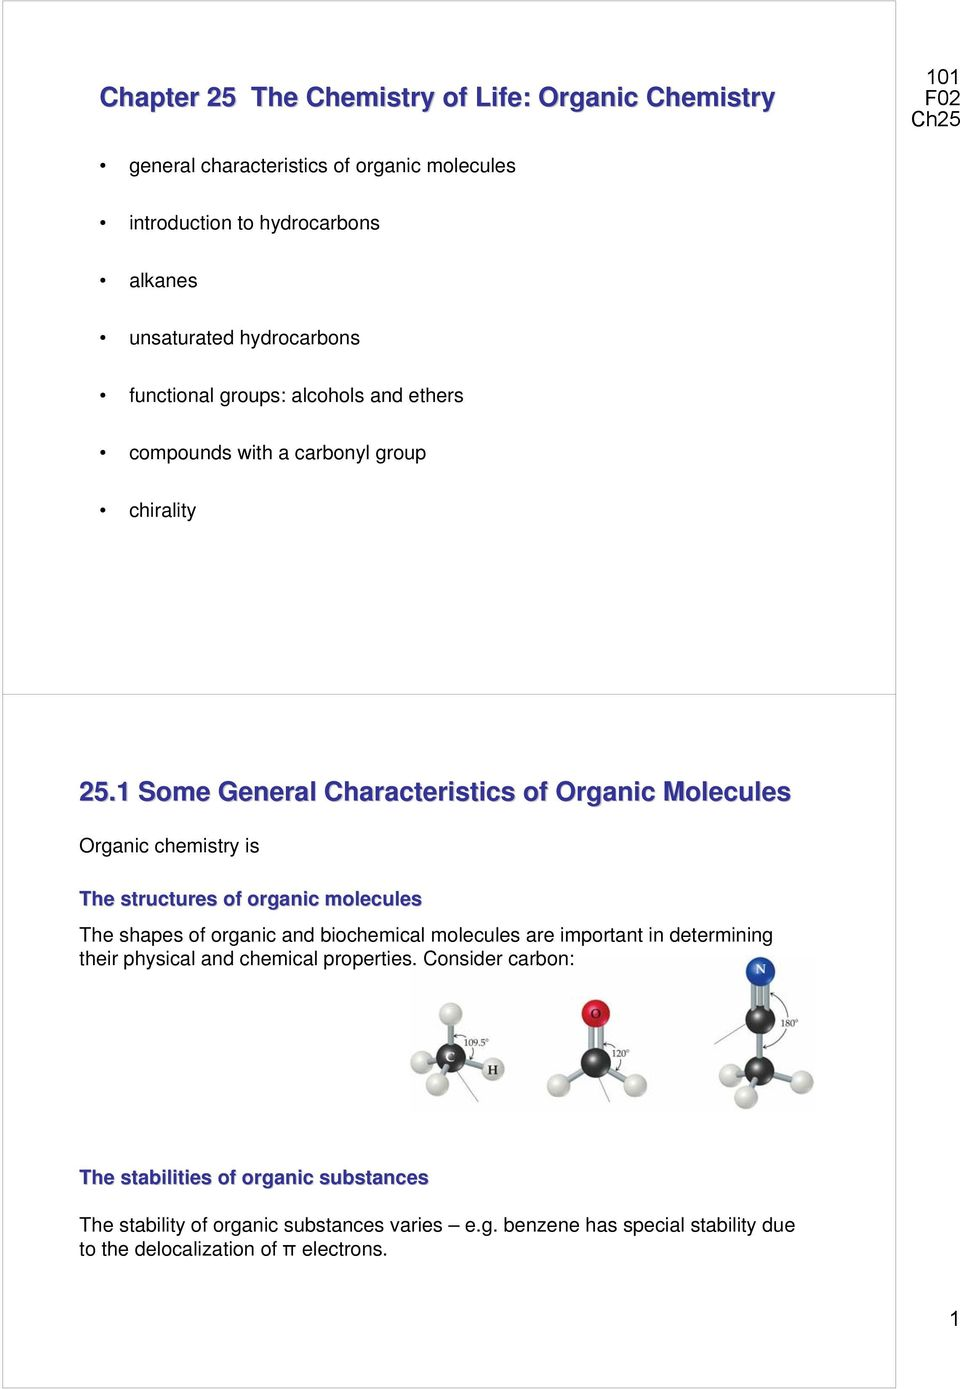 1 Some General Characteristics of Organic Molecules Organic chemistry is The structures of organic molecules The shapes of organic and biochemical molecules are